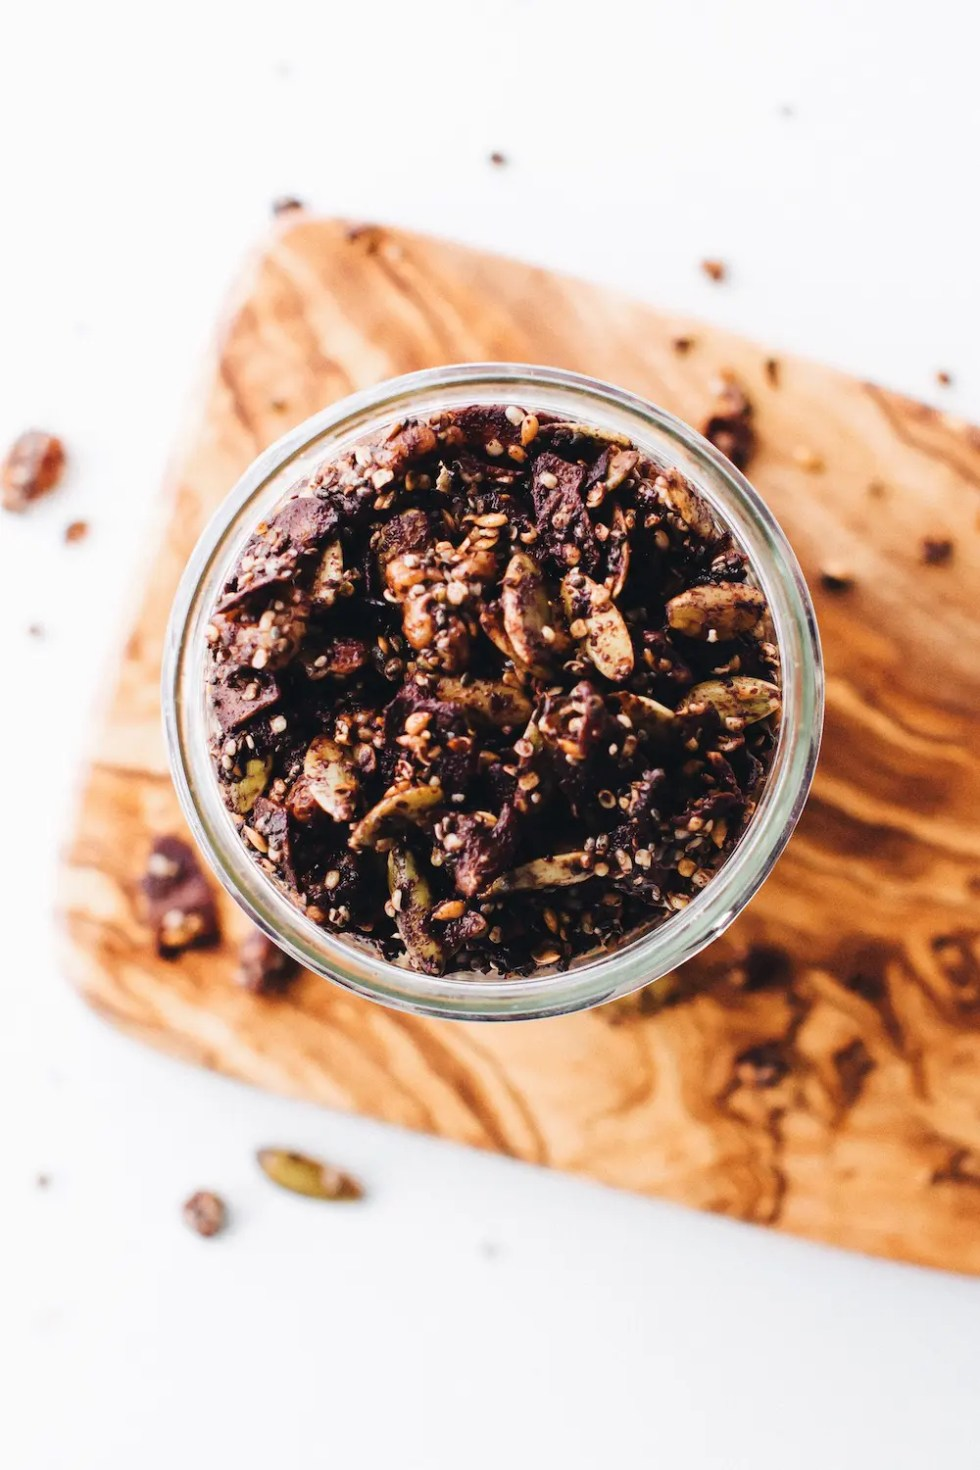 Grain-Free Chocolate Granola (vegan + paleo)